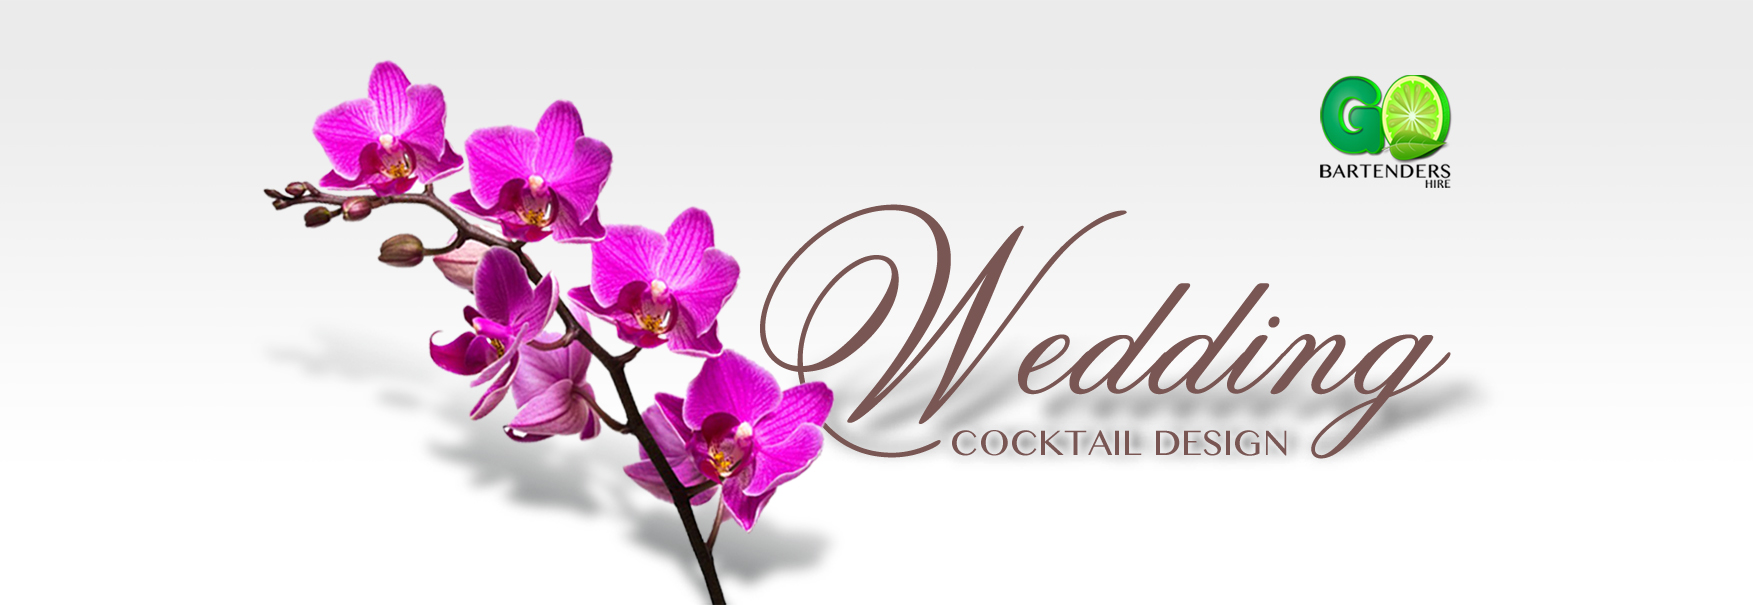 WEDDING BARTENDERS BANNERS.jpg